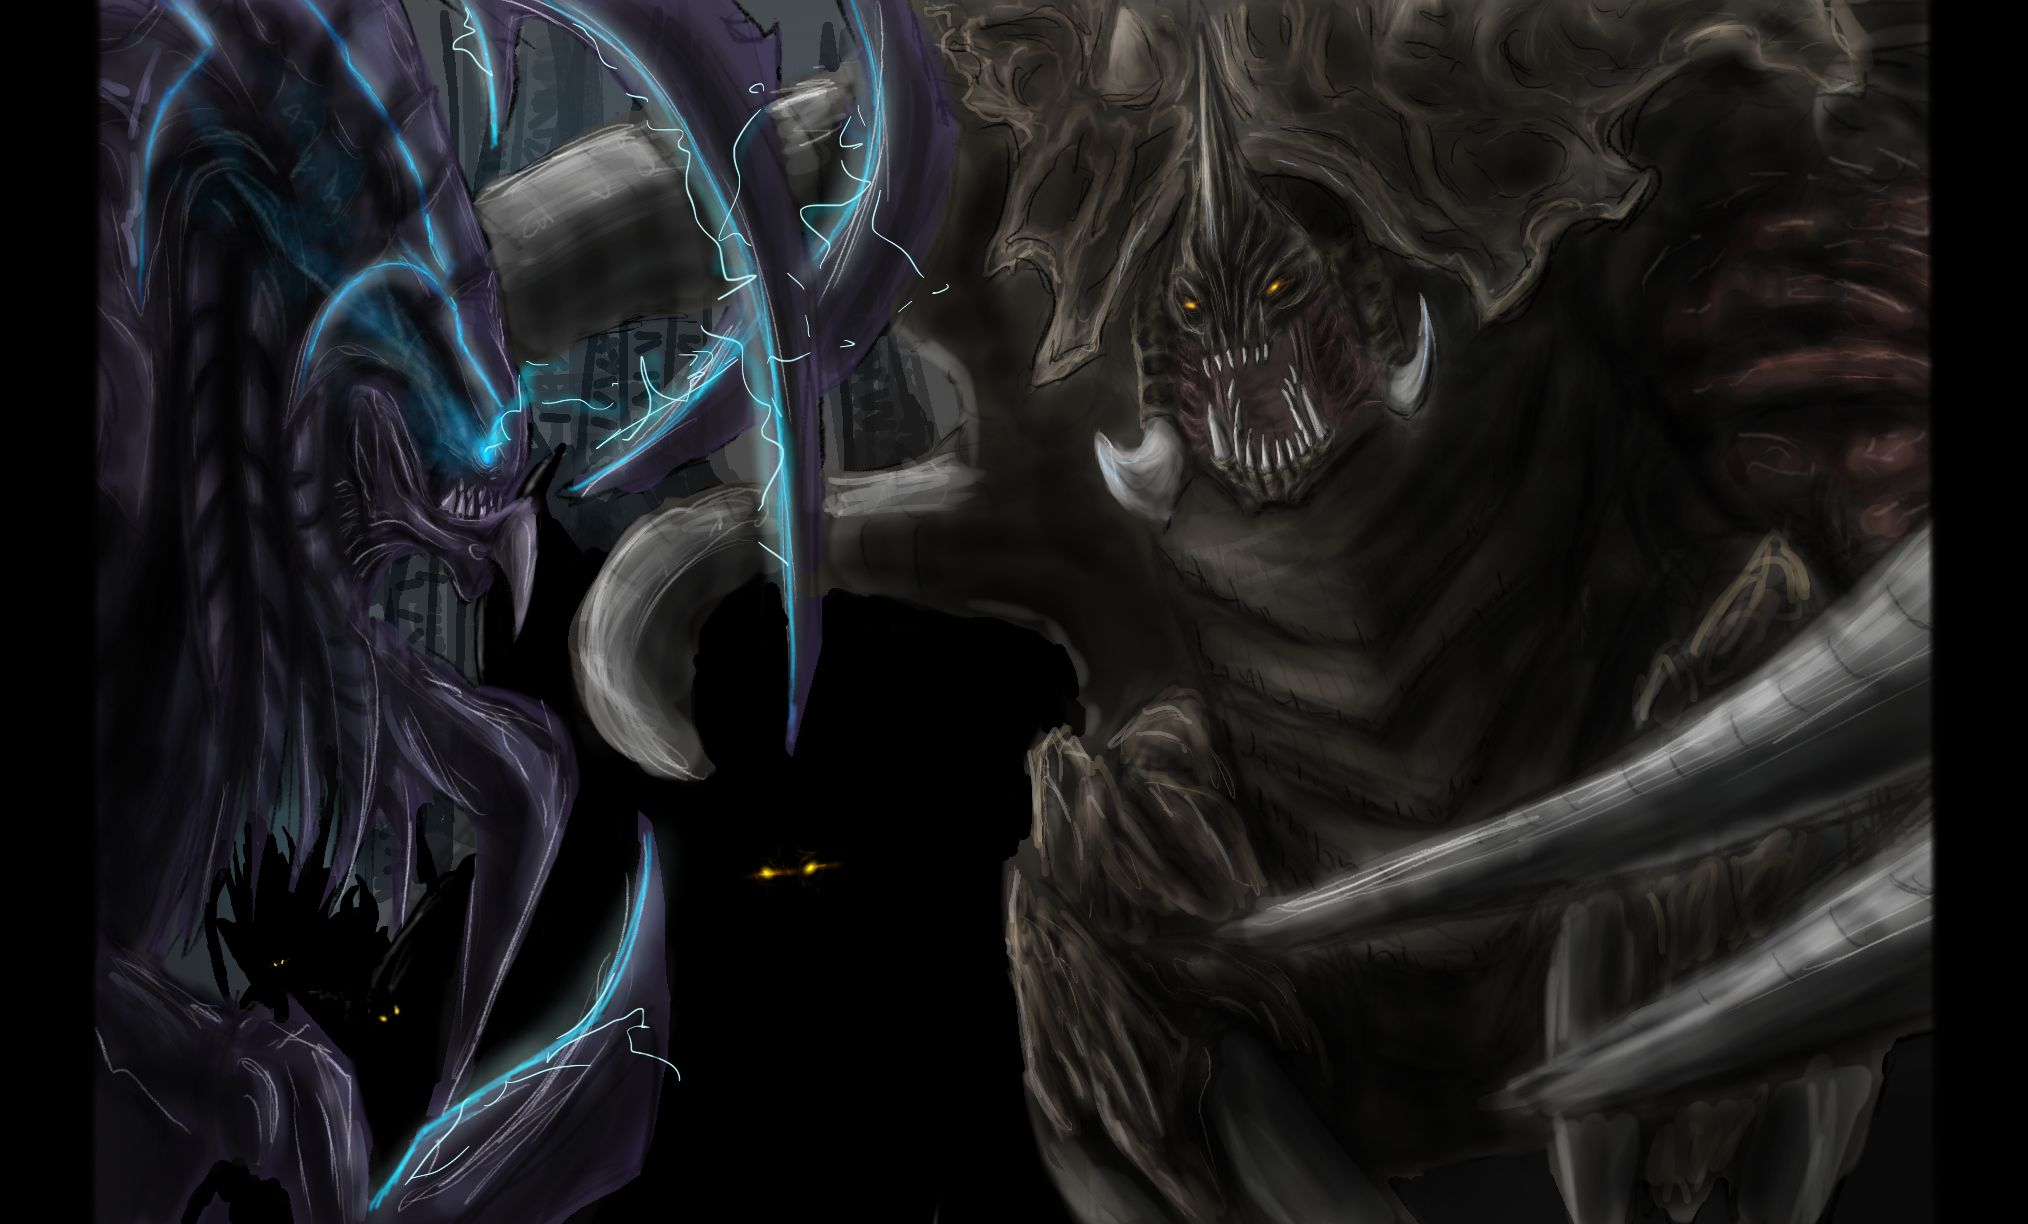 Xenomorph Vs Zerg Request - Hybri...